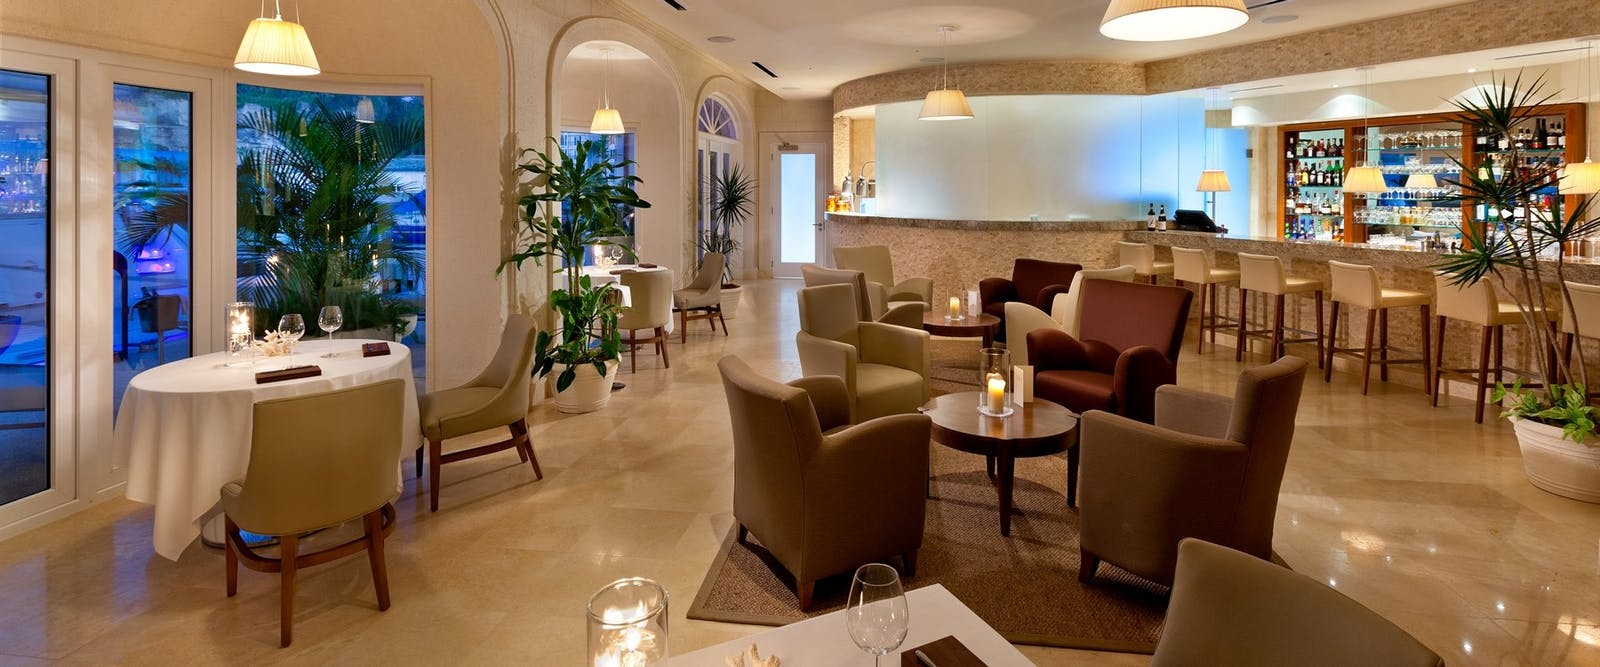 Restaurant at Port Ferdinand Marina & Luxury Residences, Barbados